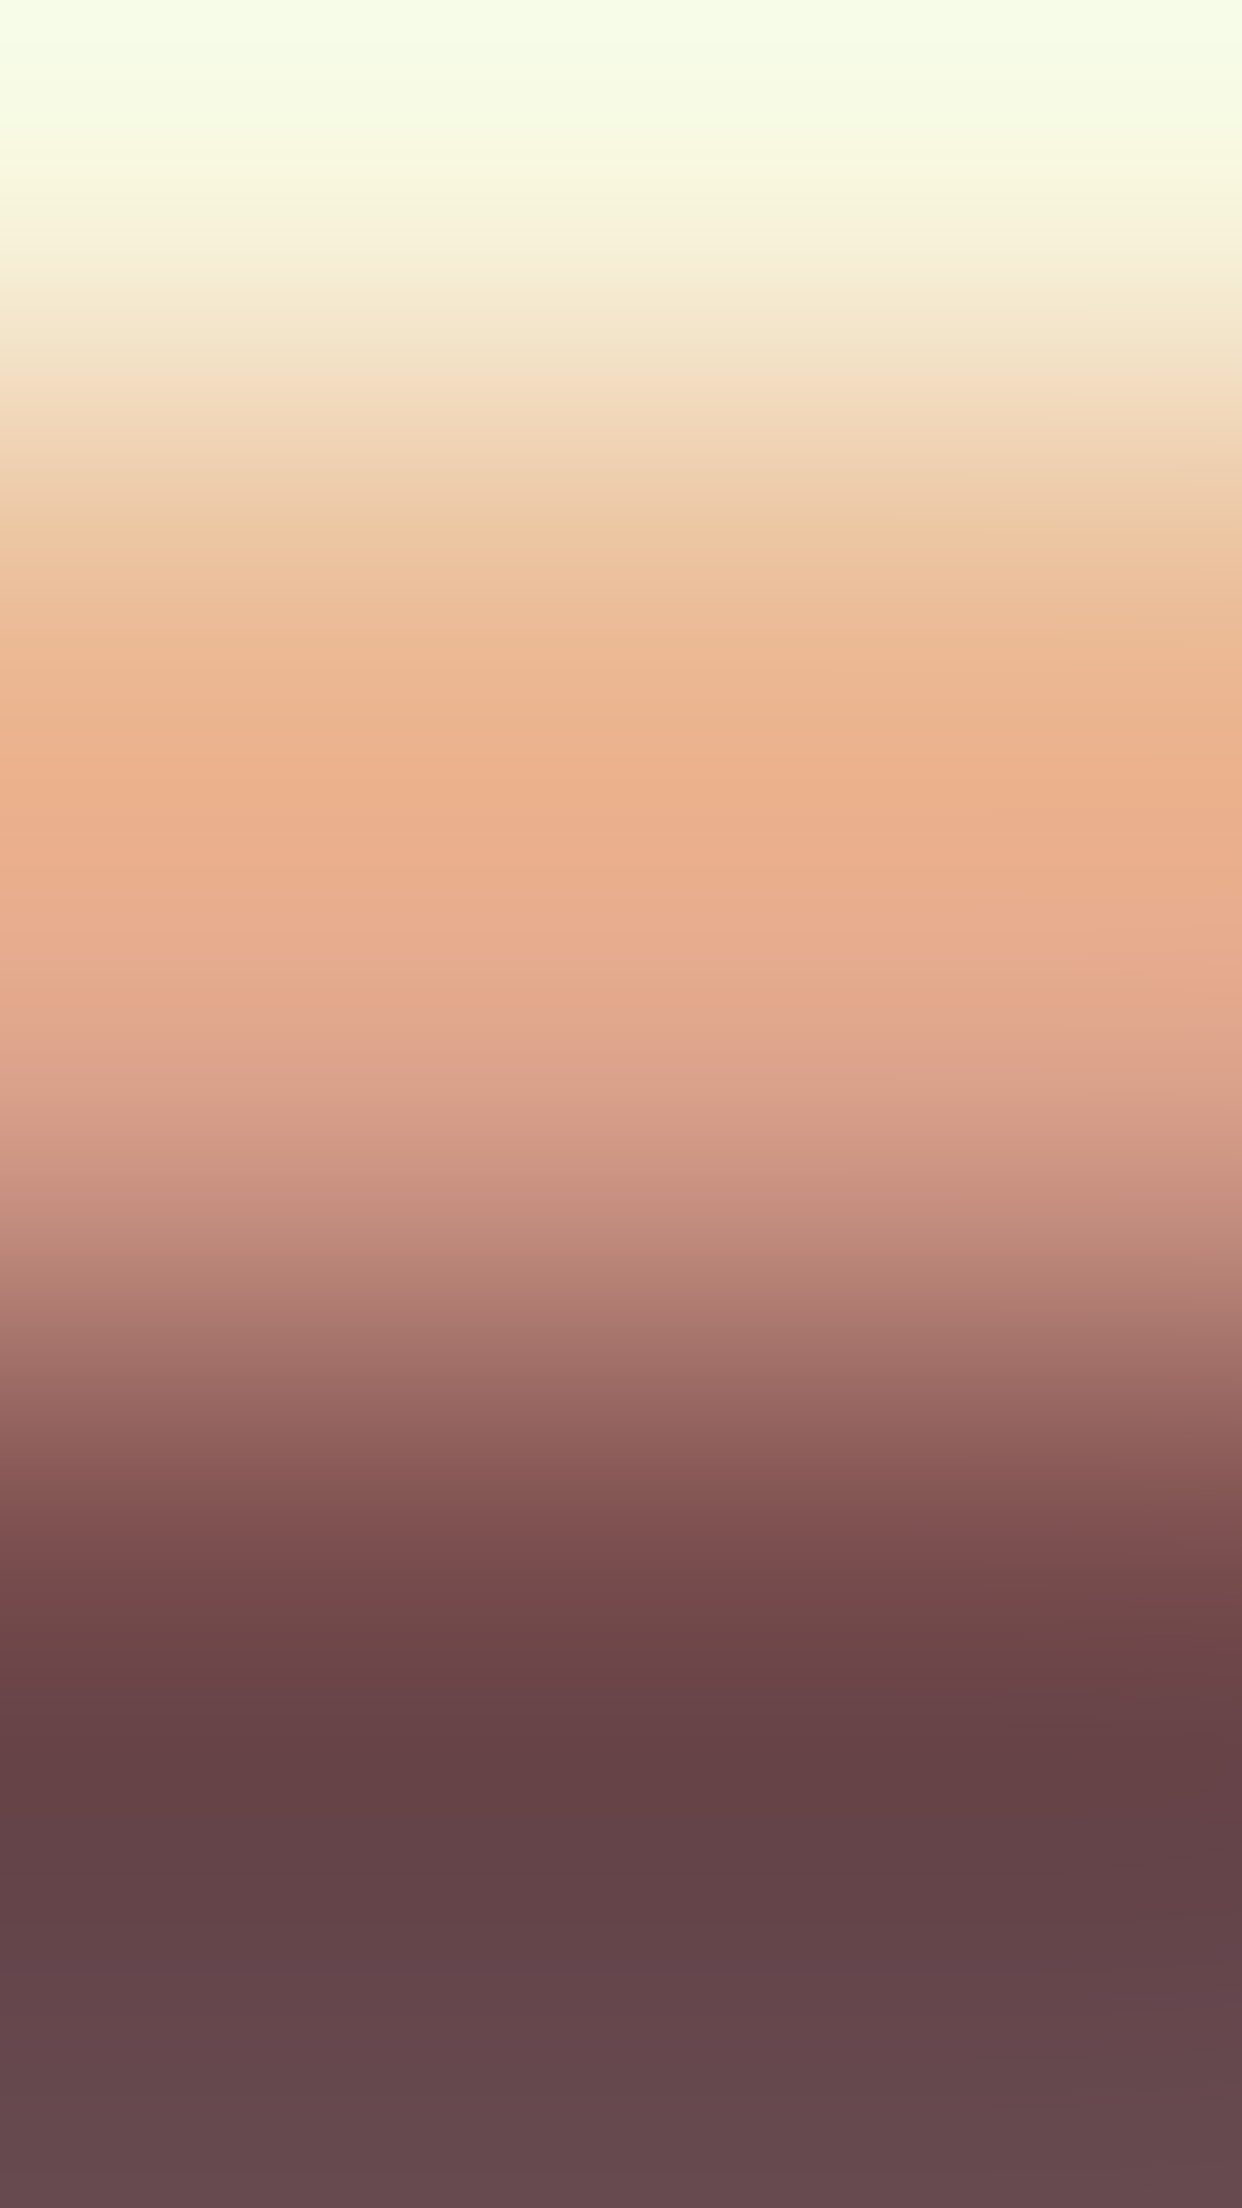 Sk09 Fall Orange Brown Blur Gradation Wallpaper